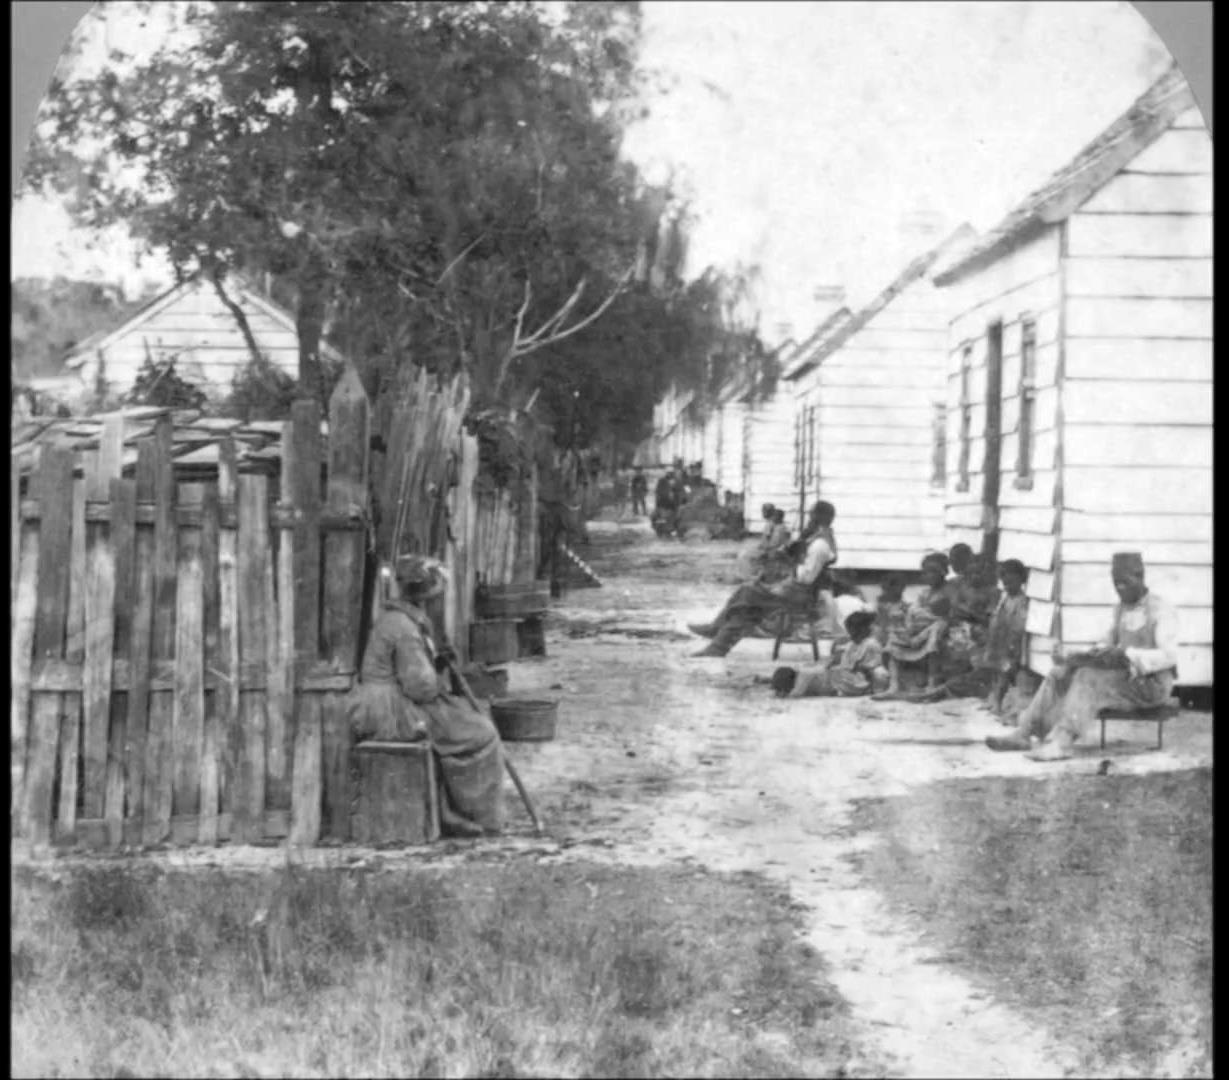 Rare Photos of Slaves in South Carolina From the 1850s1860s_05